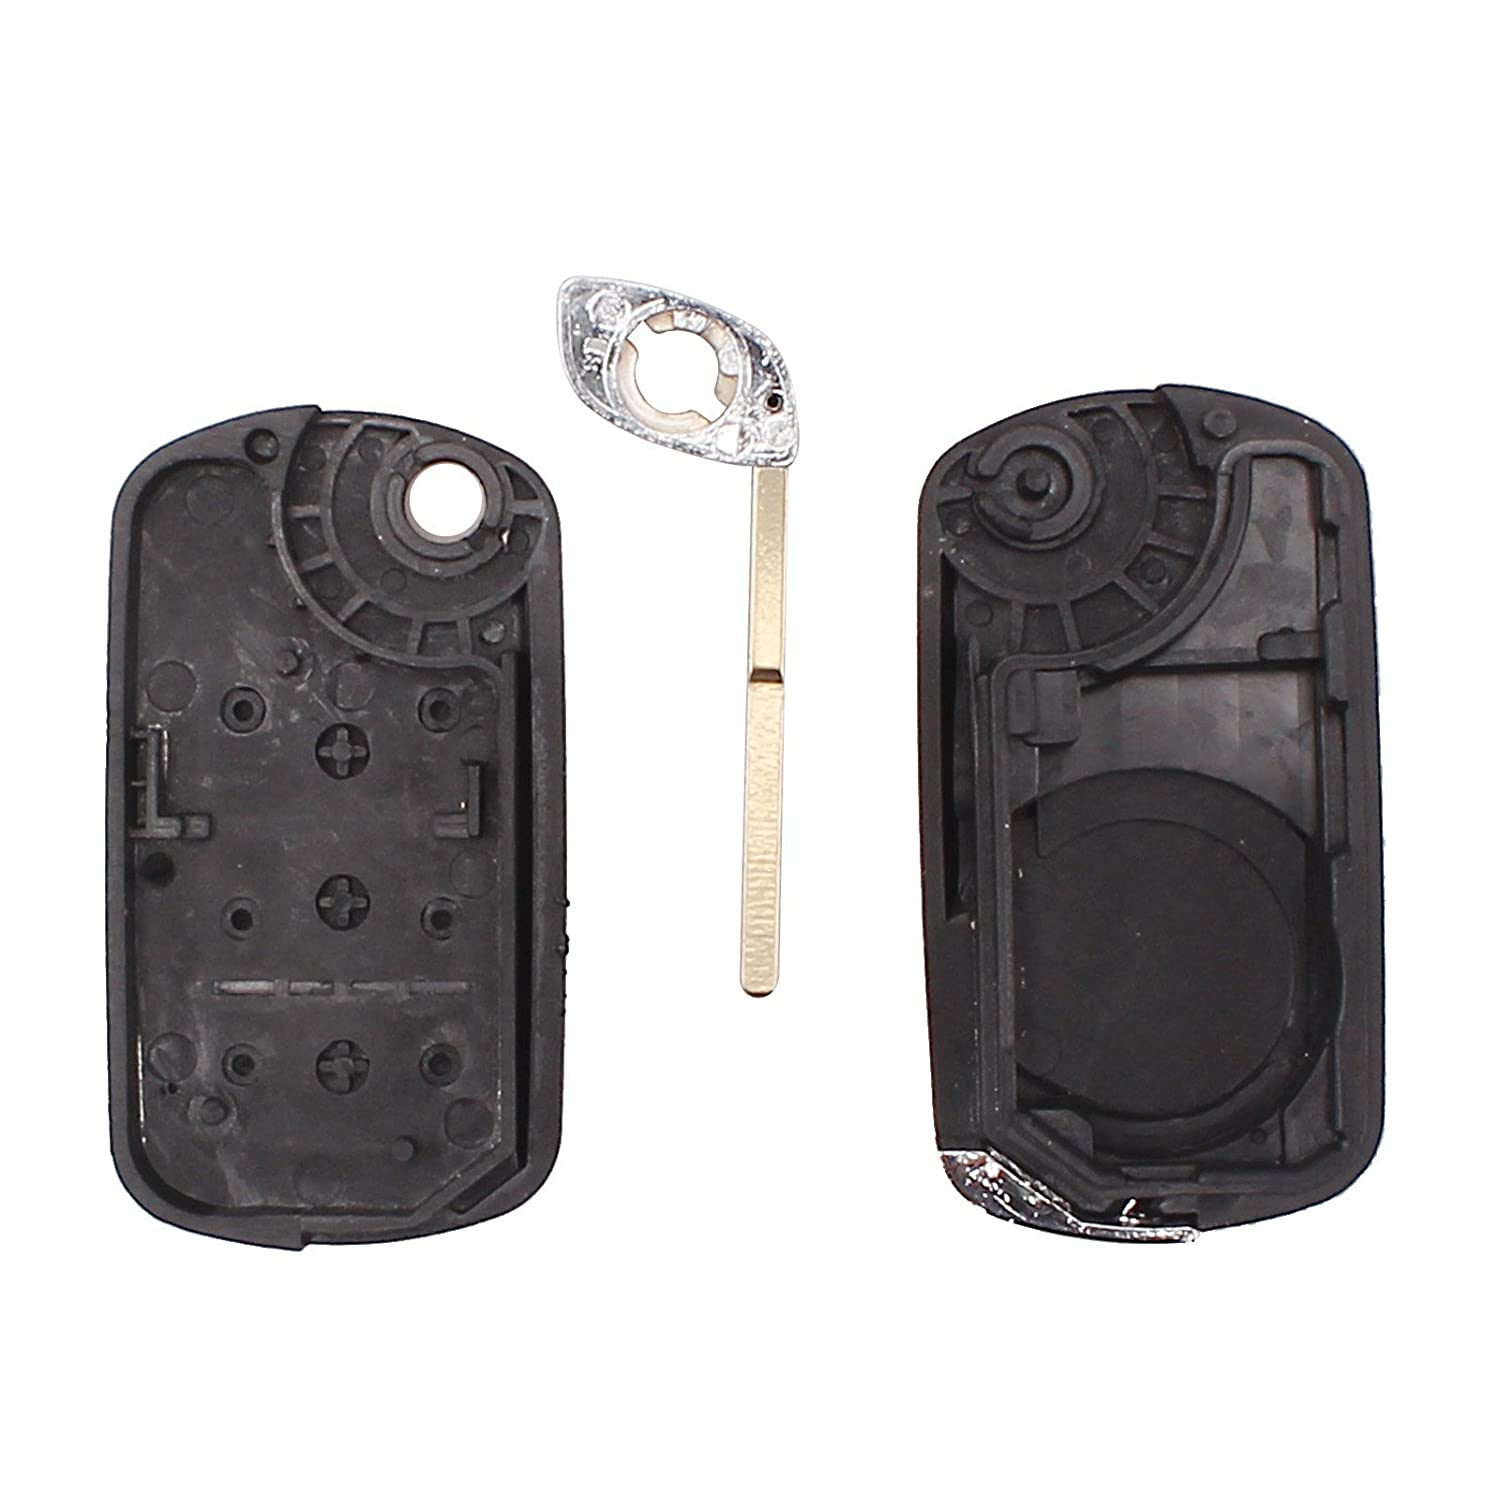 KEMANI Uncut Blade Flip Remote Key Fob Shell Case Replacement For Land Rover Discovery LR3 Range Rover Sport 3Button No Chips Inside